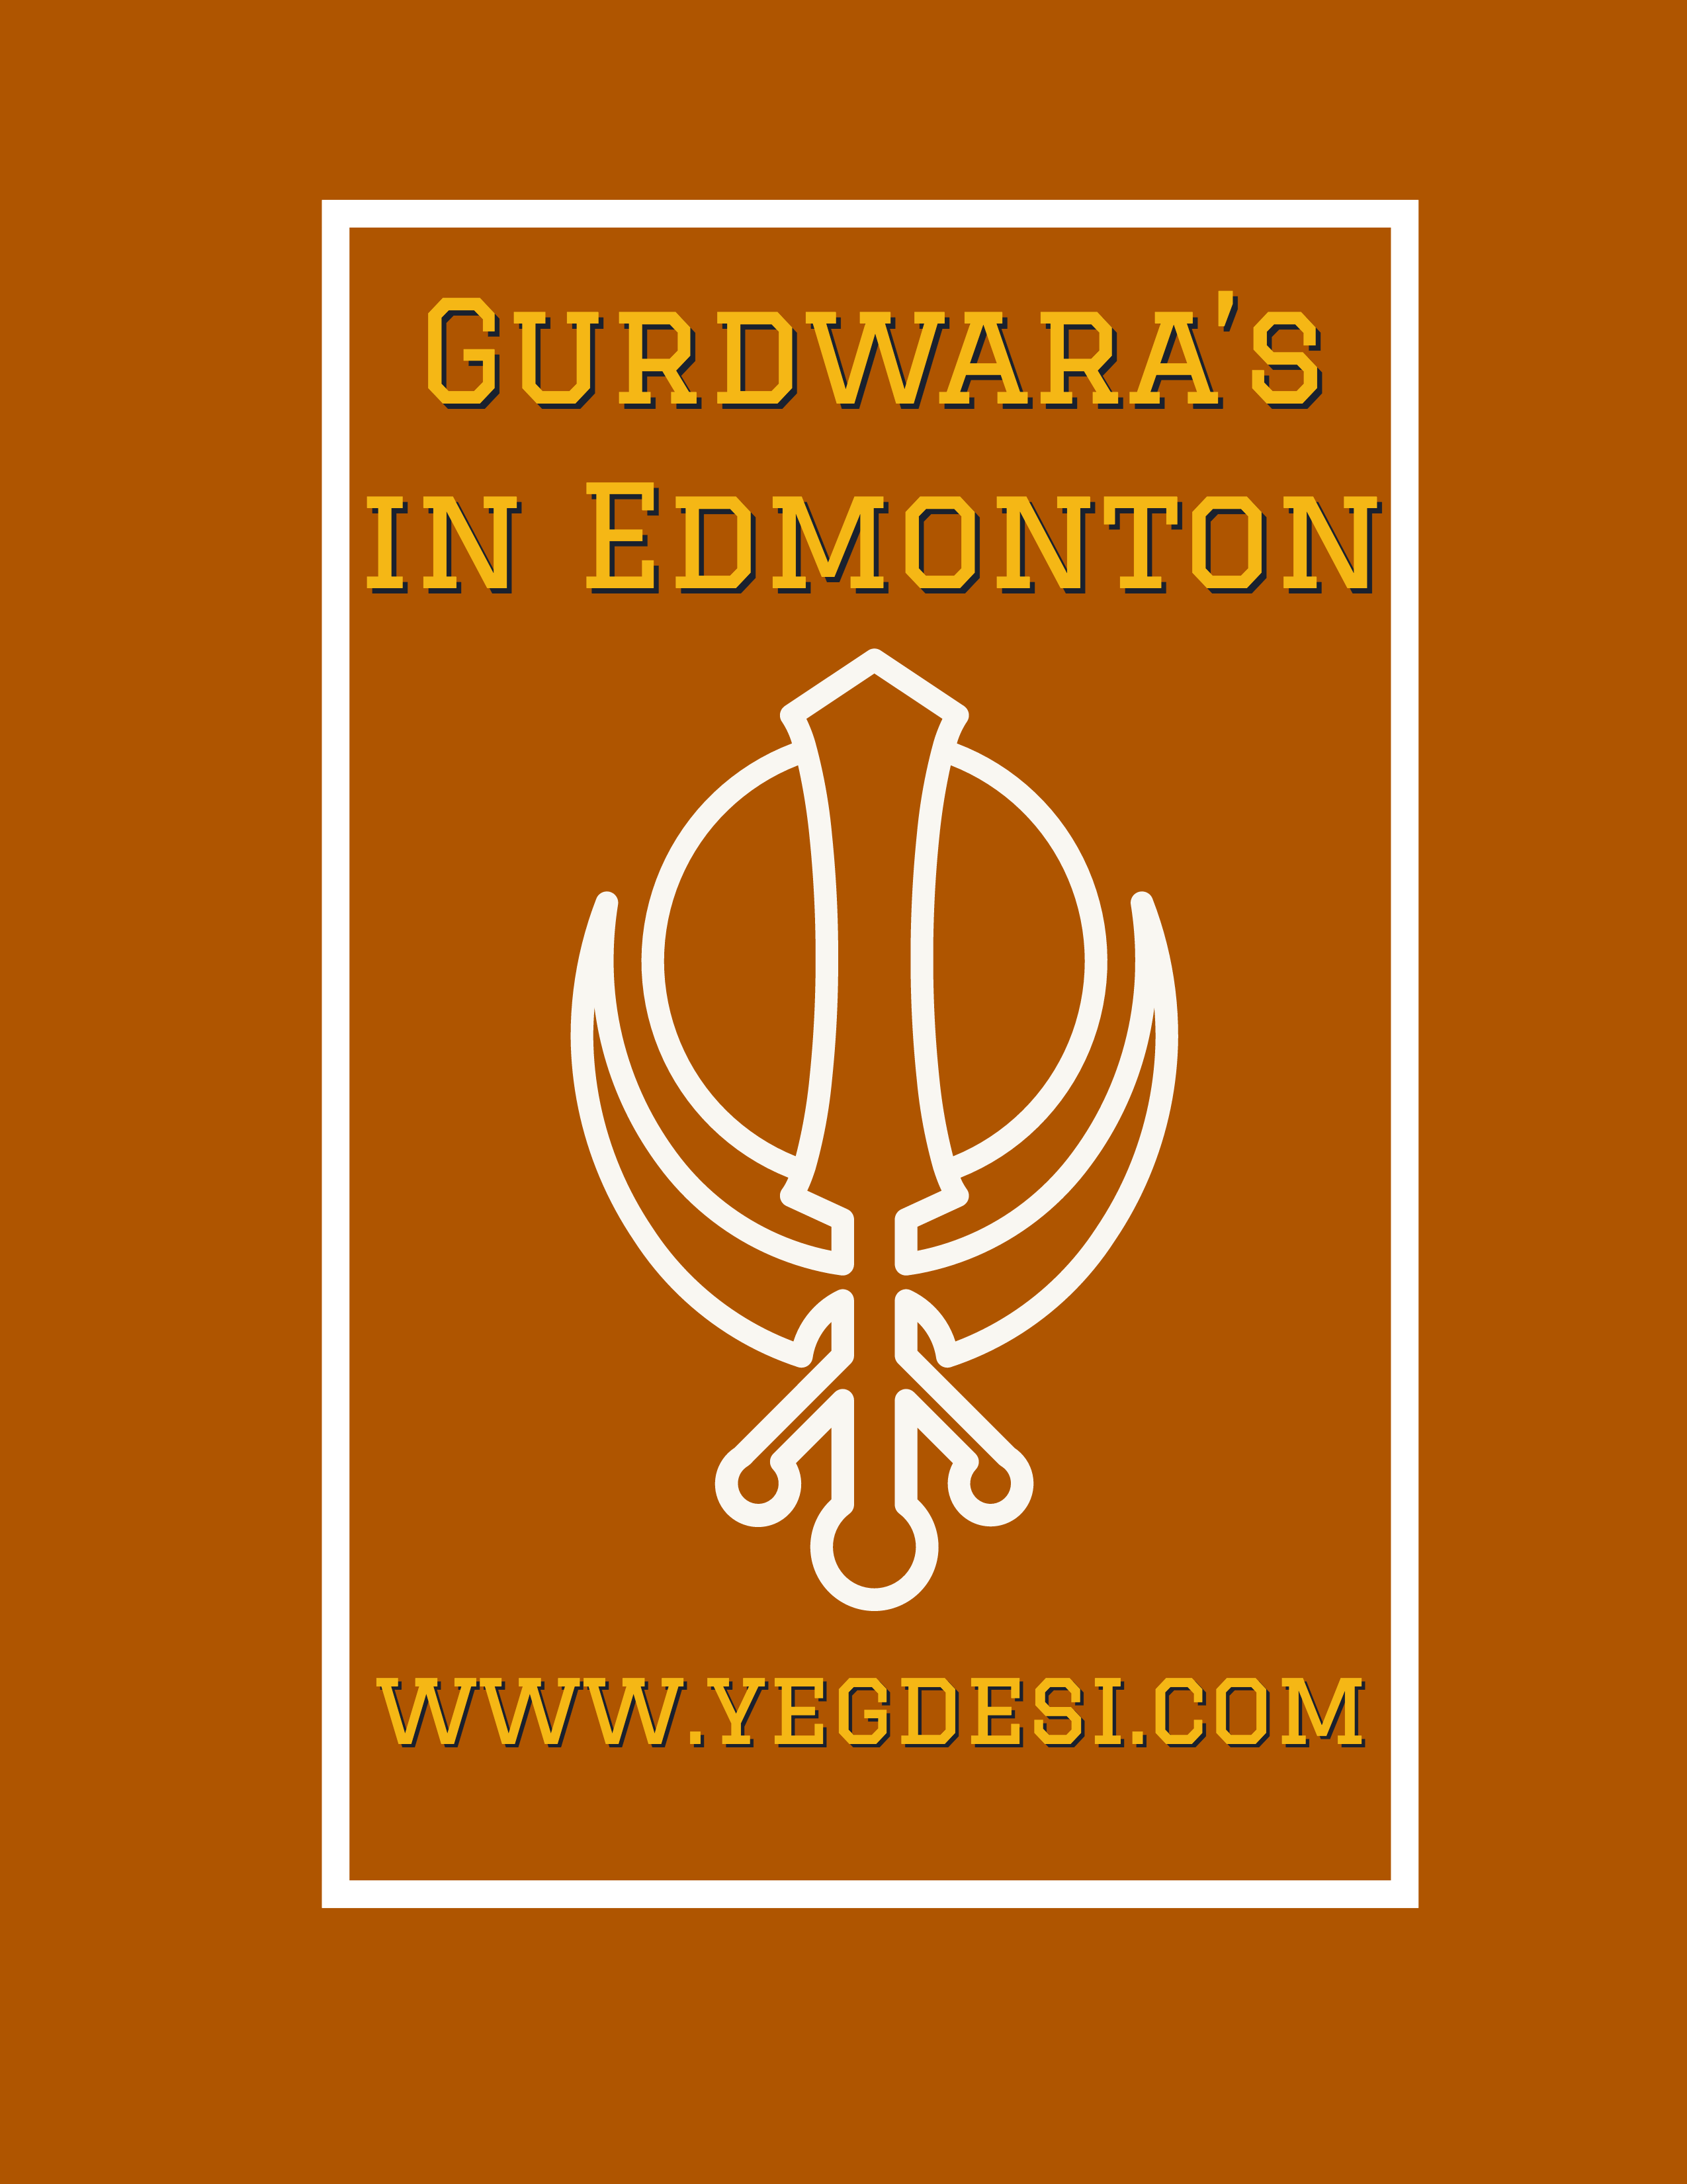 Gurdwara in Edmonton